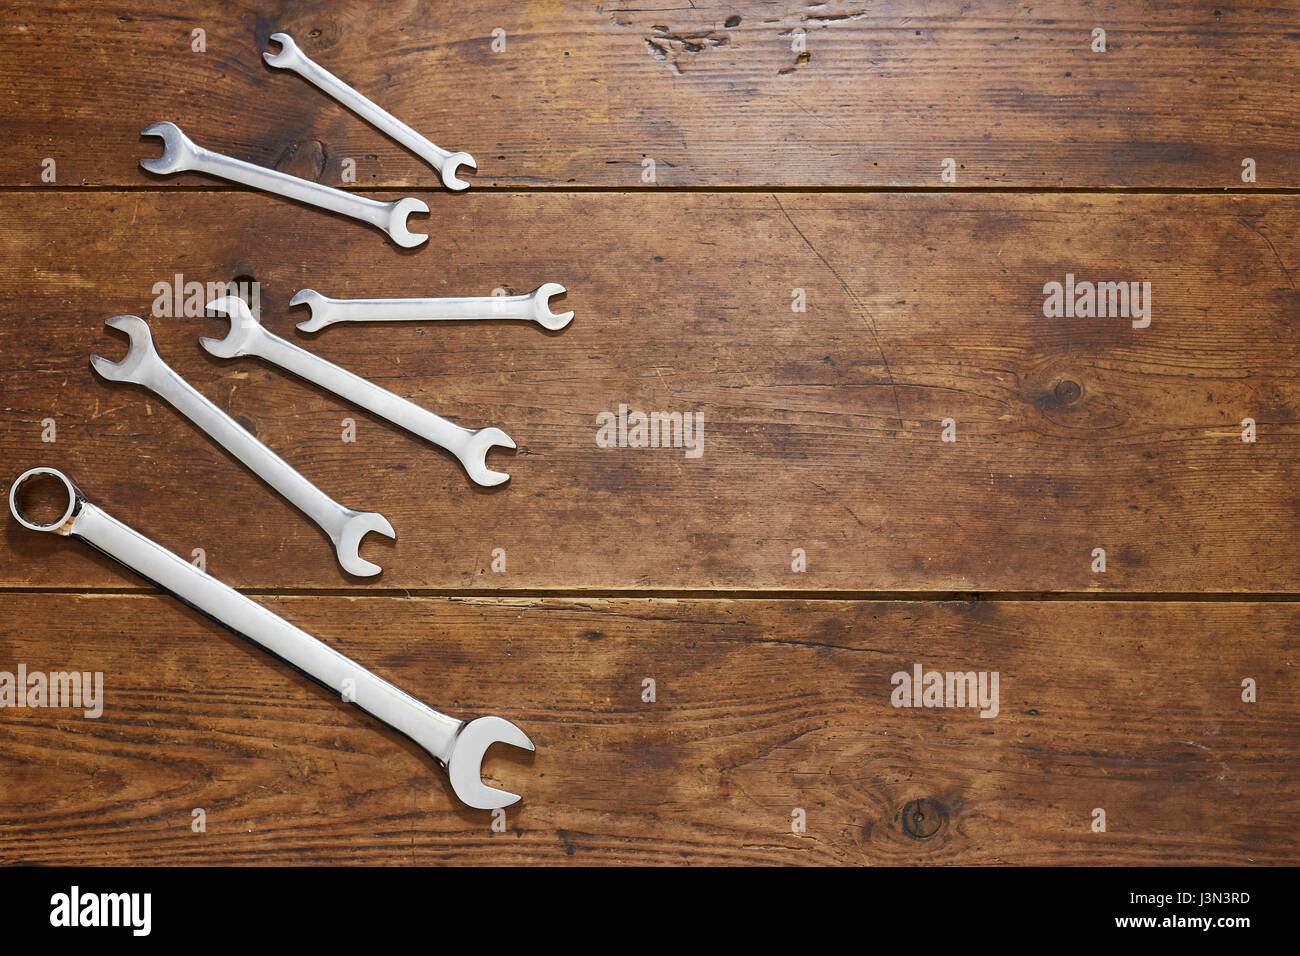 Scattered spanners on table top - Stock Image